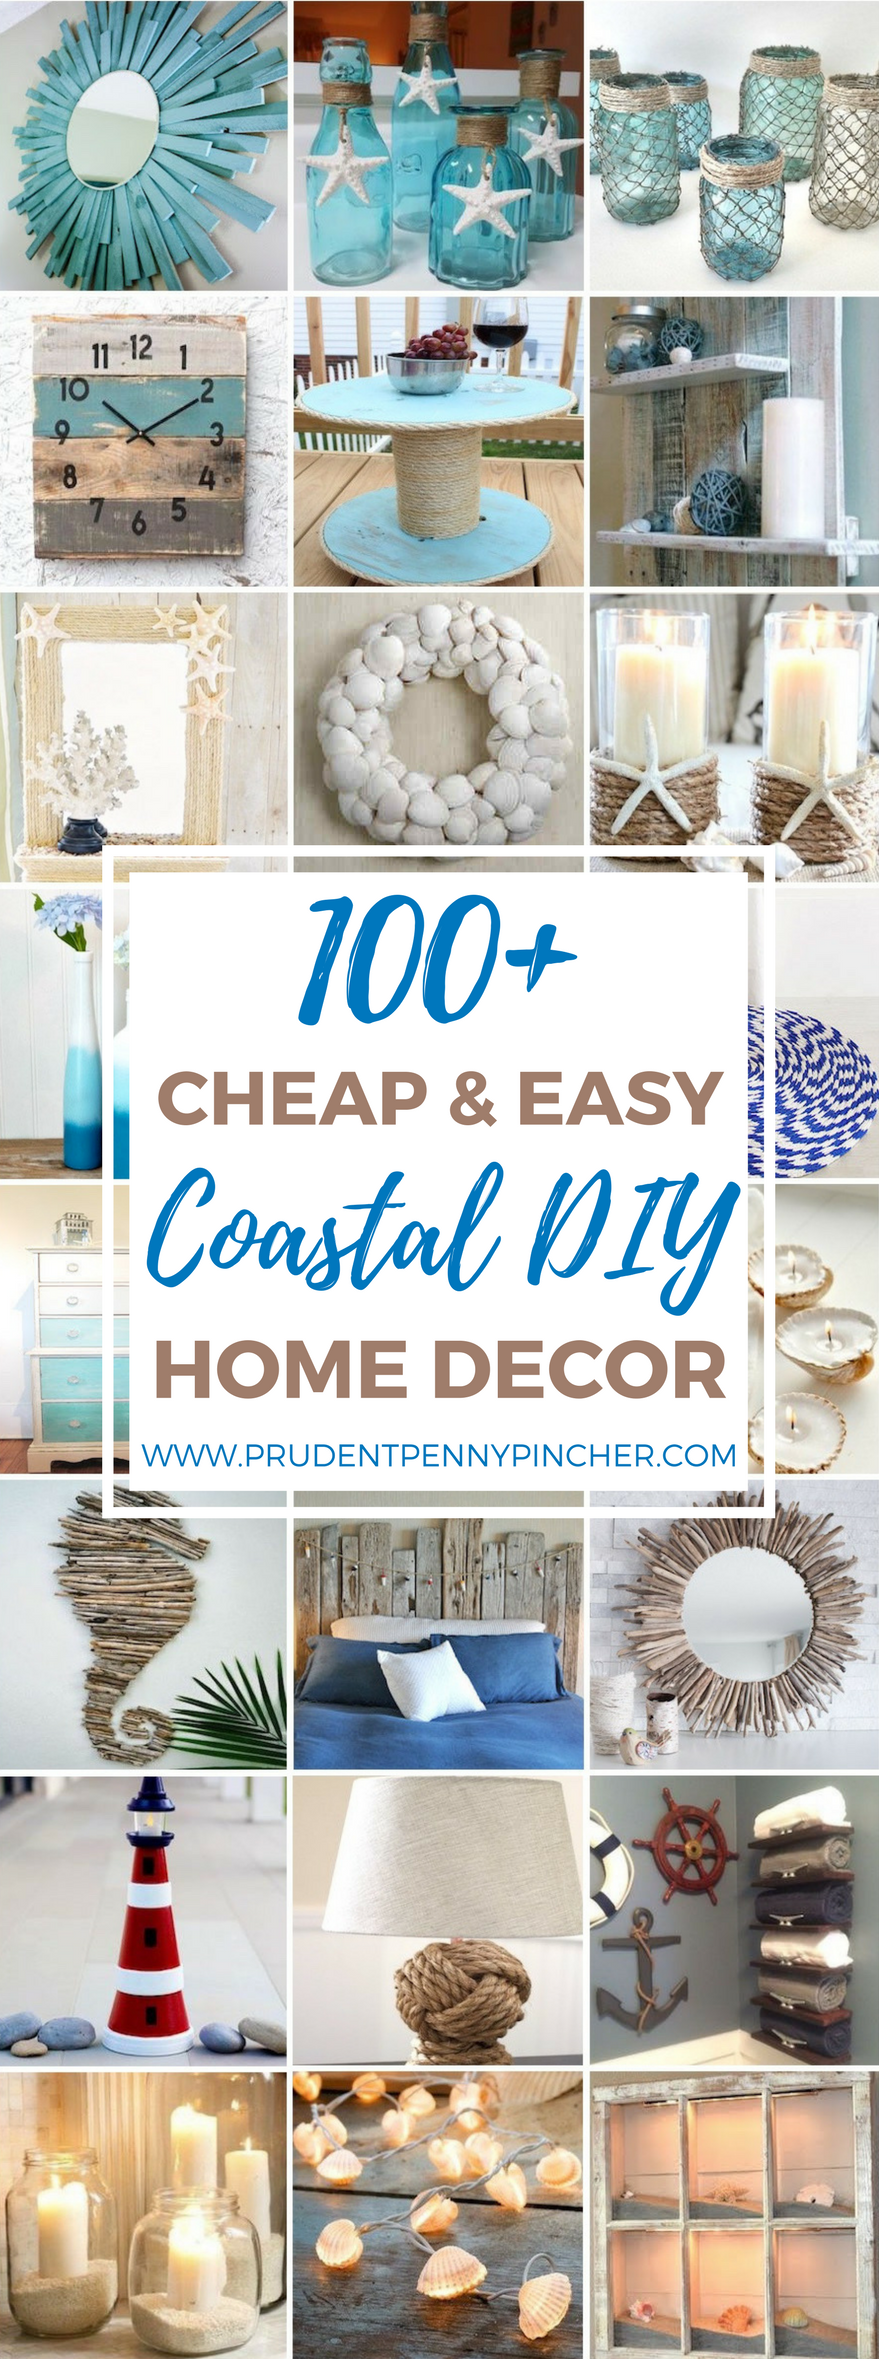 100 Cheap and Easy Coastal DIY Home Decor Ideas | Crafty Ideas ...